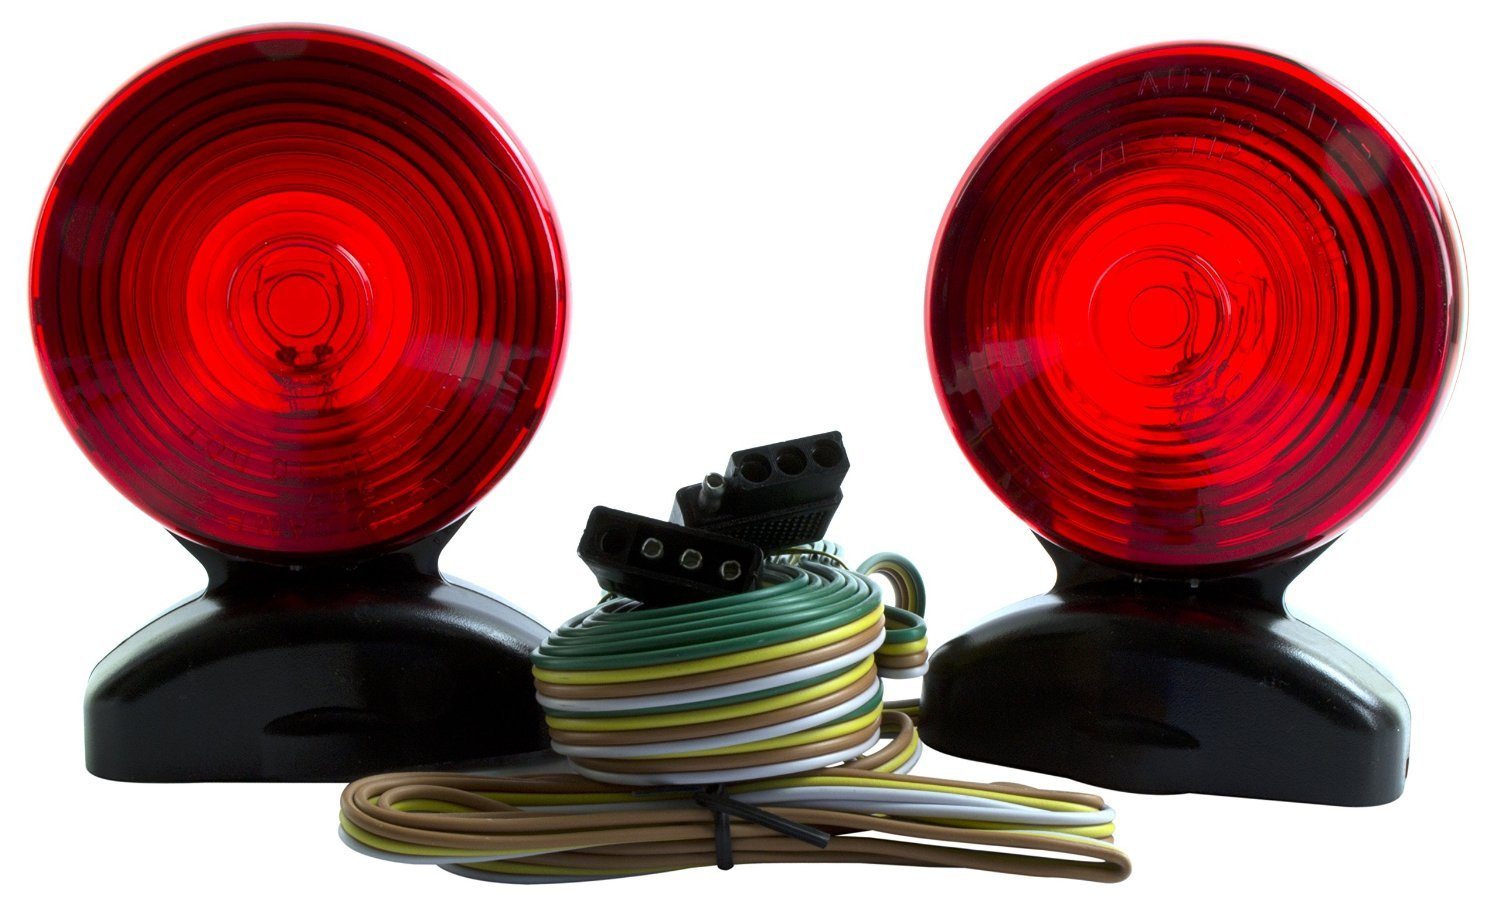 LifeSupplyUSA LED Volt Magnetic Towing Trailer Tow Light Tail Light Haul Kit Complete Set Auto, Boat, RV, Trailer, etc. by LifeSupplyUSA